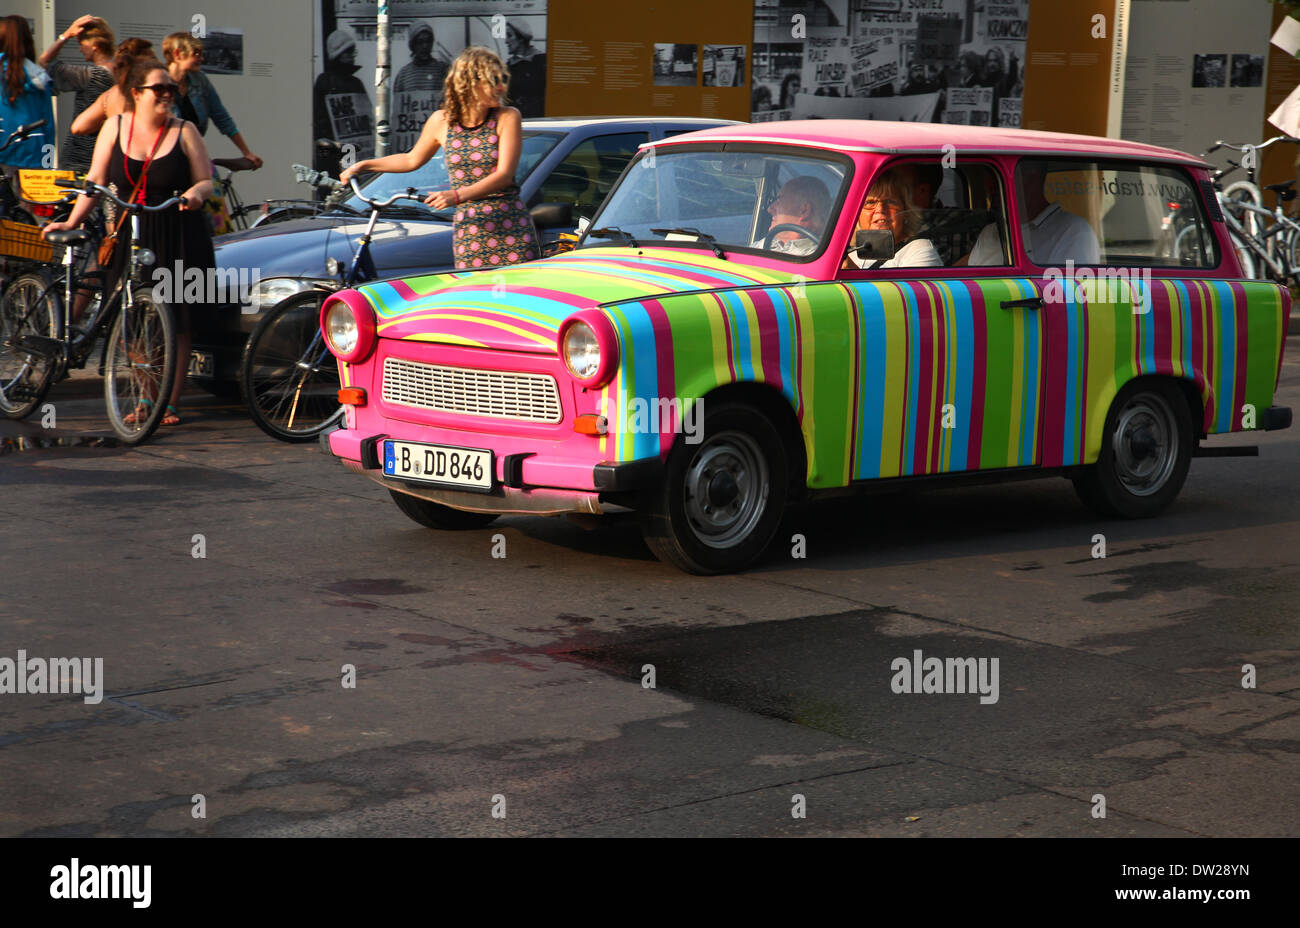 Tourists drive in an East German Trabant car at Checkpoint Charlie in Berlin, August 10, 2013. More and more tourists Stock Photo